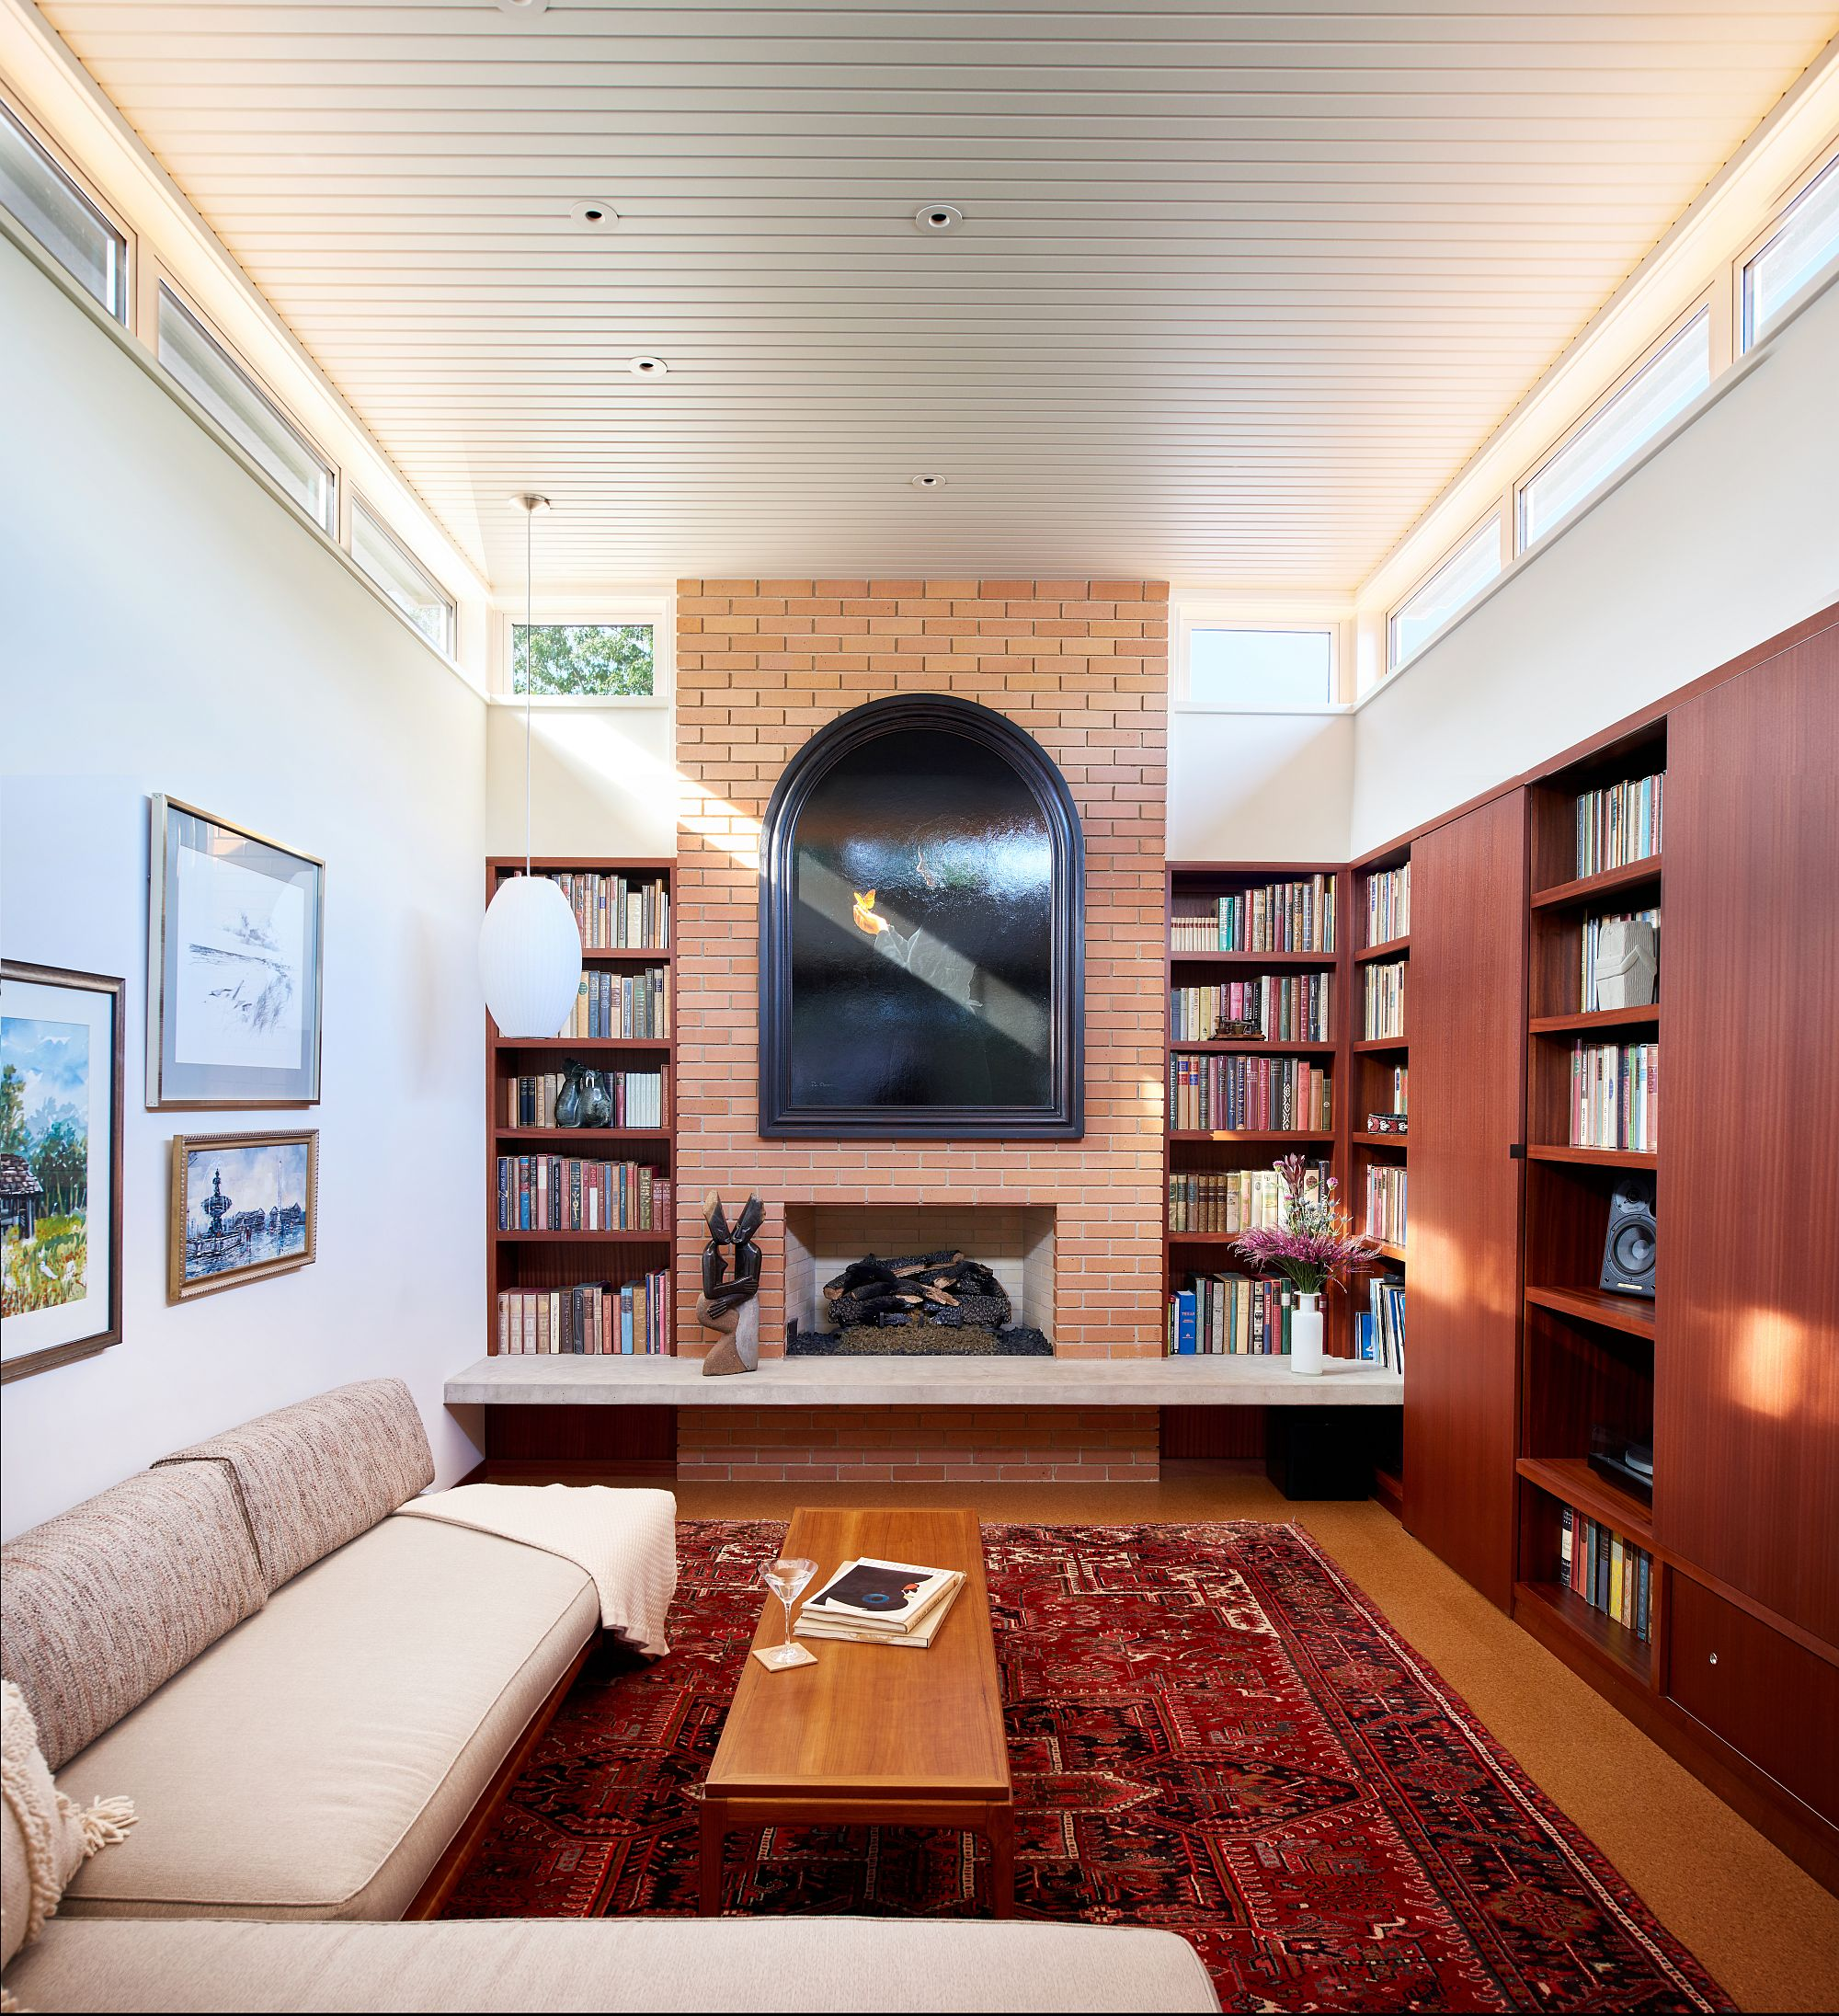 Smart use of Clerestory windows in the living and family rooms improves the ventilation indoors